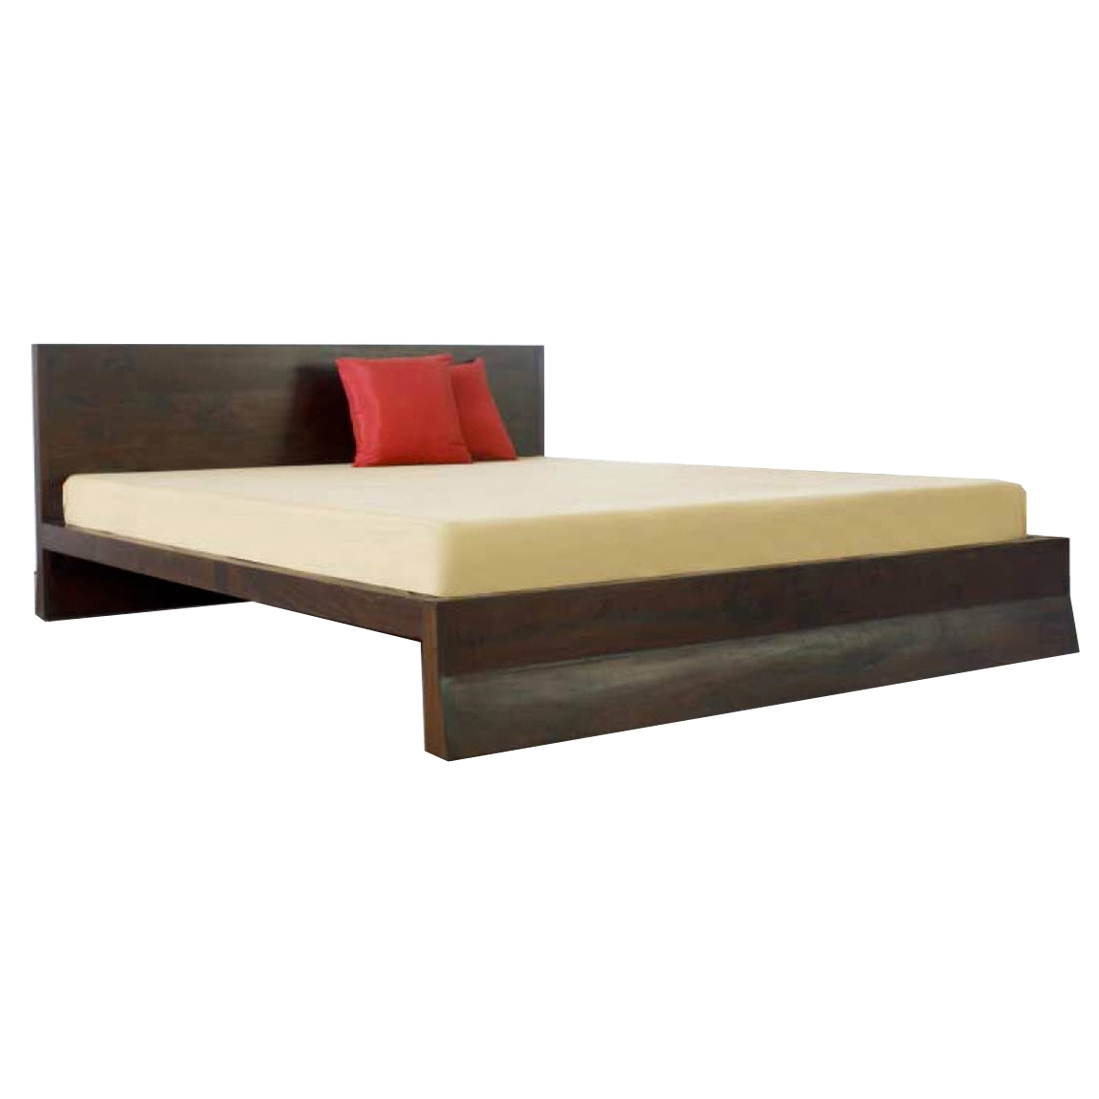 Asian style king bed